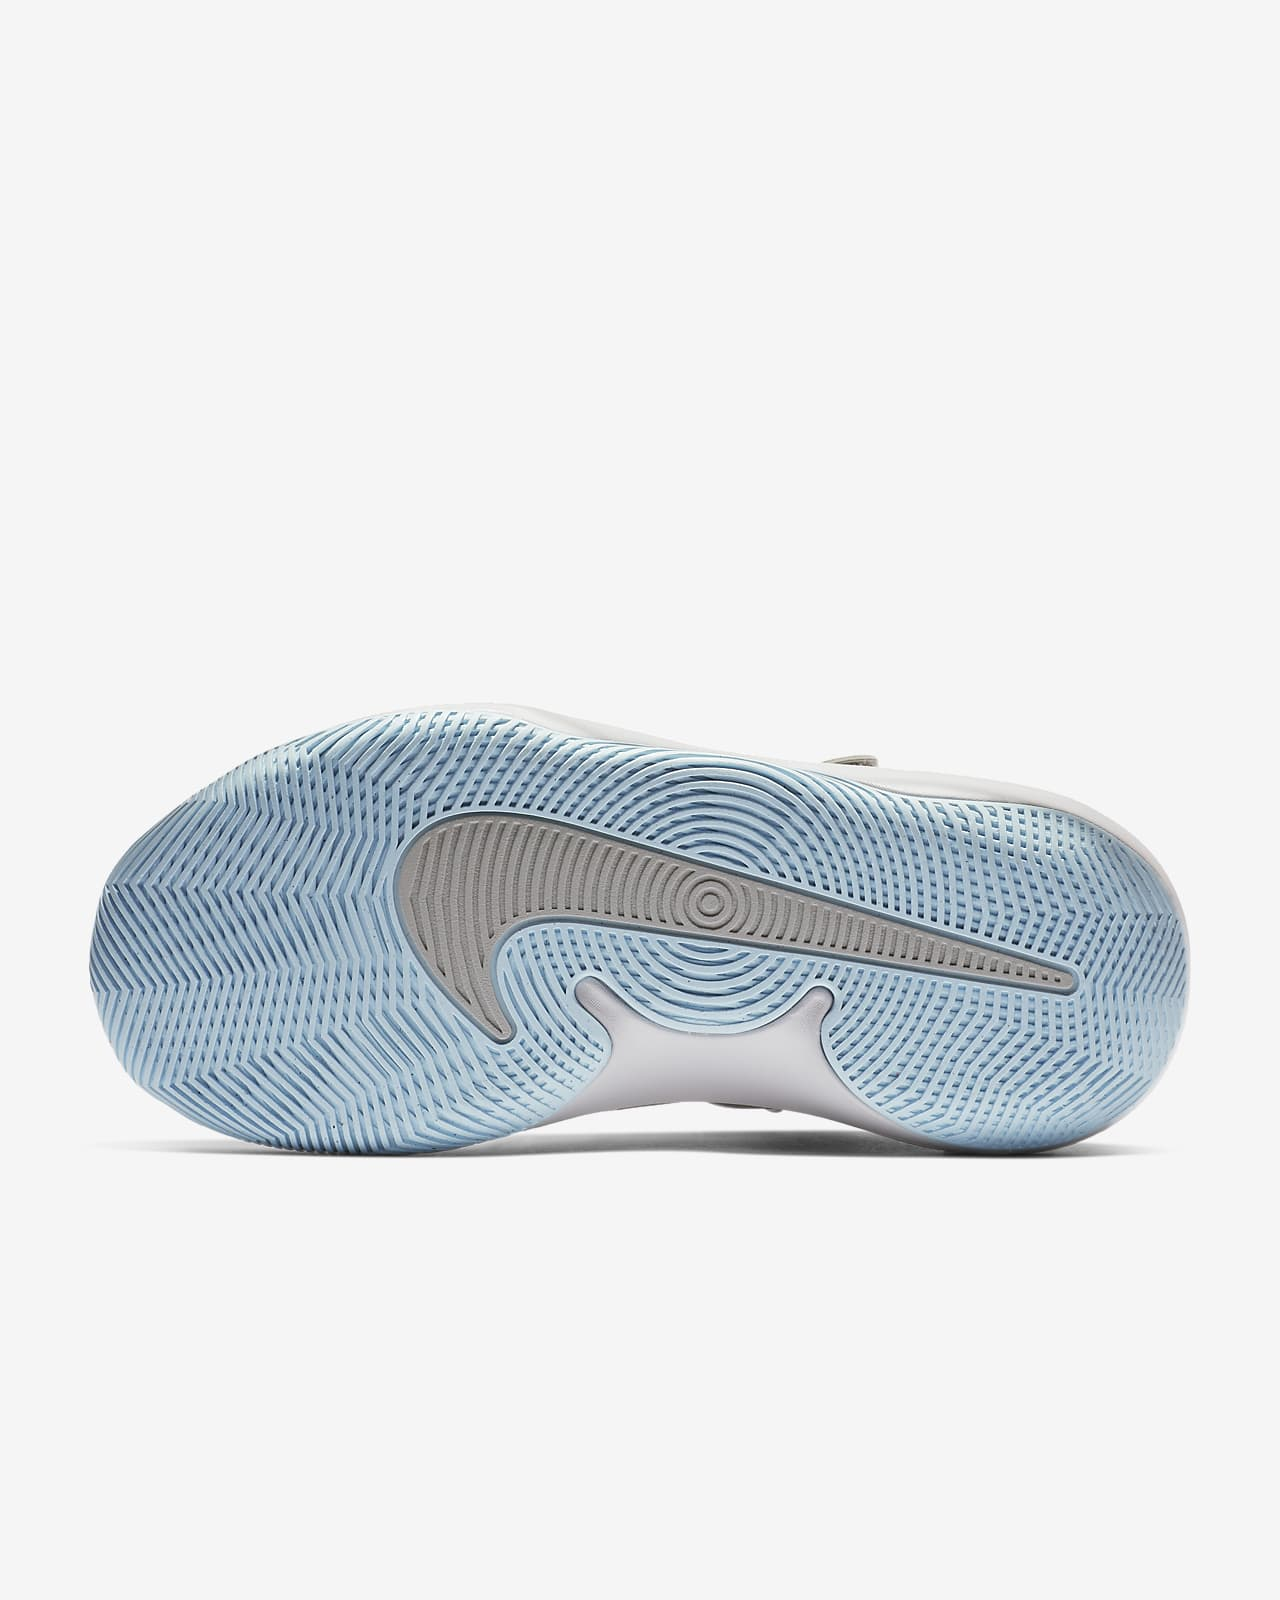 Nike Air Precision II FlyEase (Extra